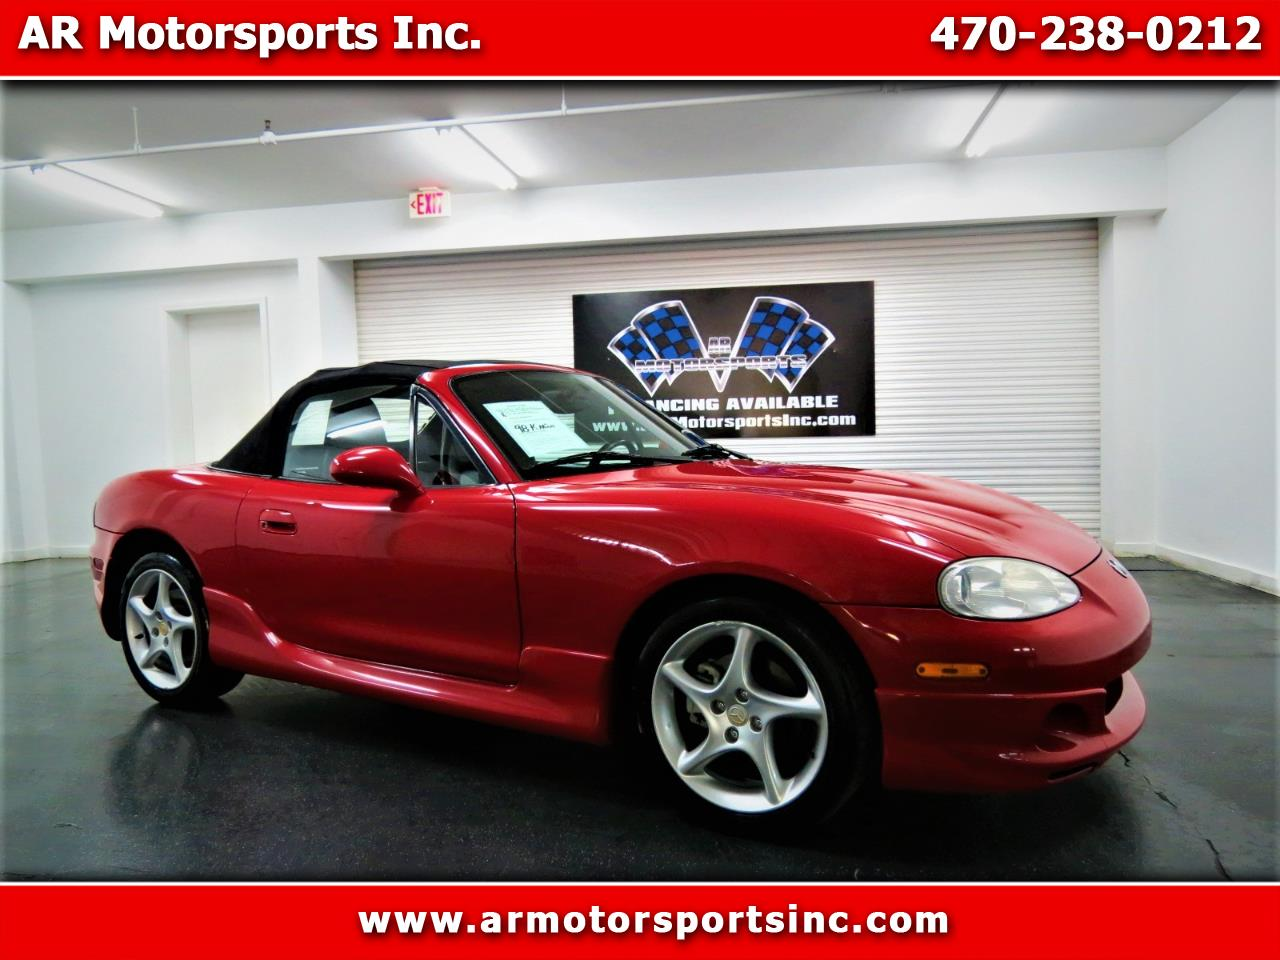 2003 Mazda MX-5 Miata 2dr Conv Leather Pkg Auto